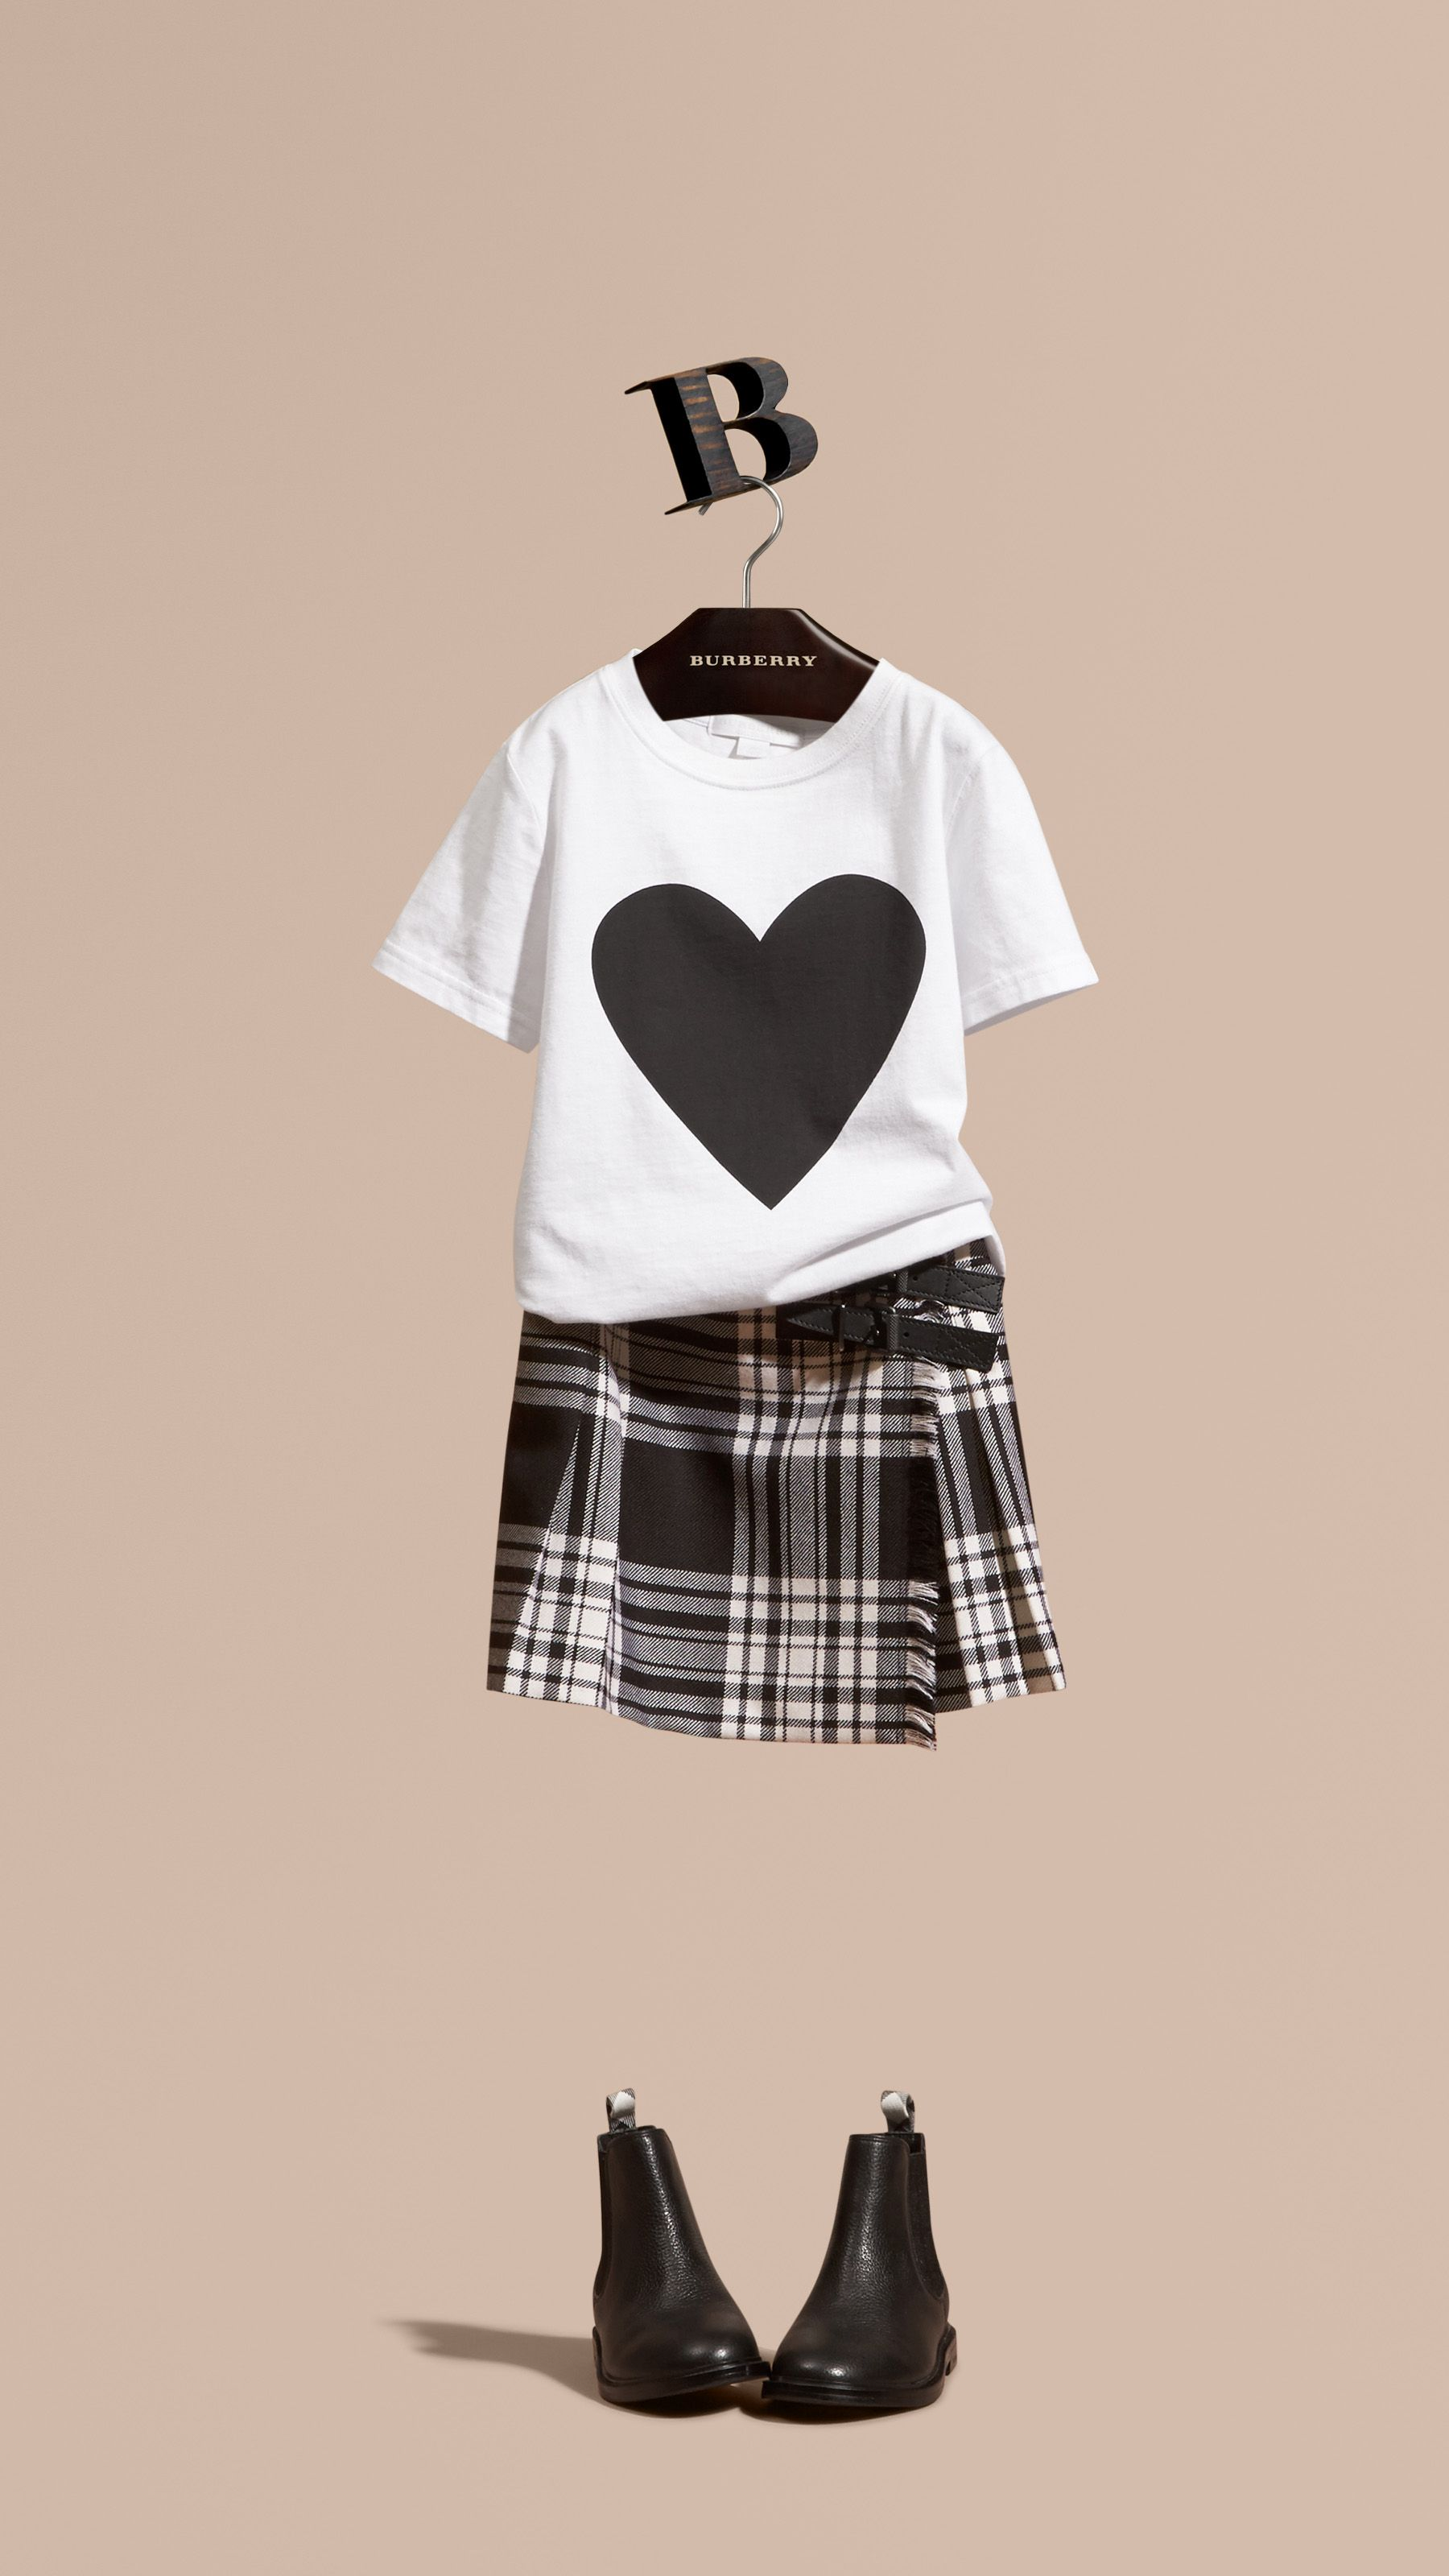 Burberry Kids Black and White outfit Детское